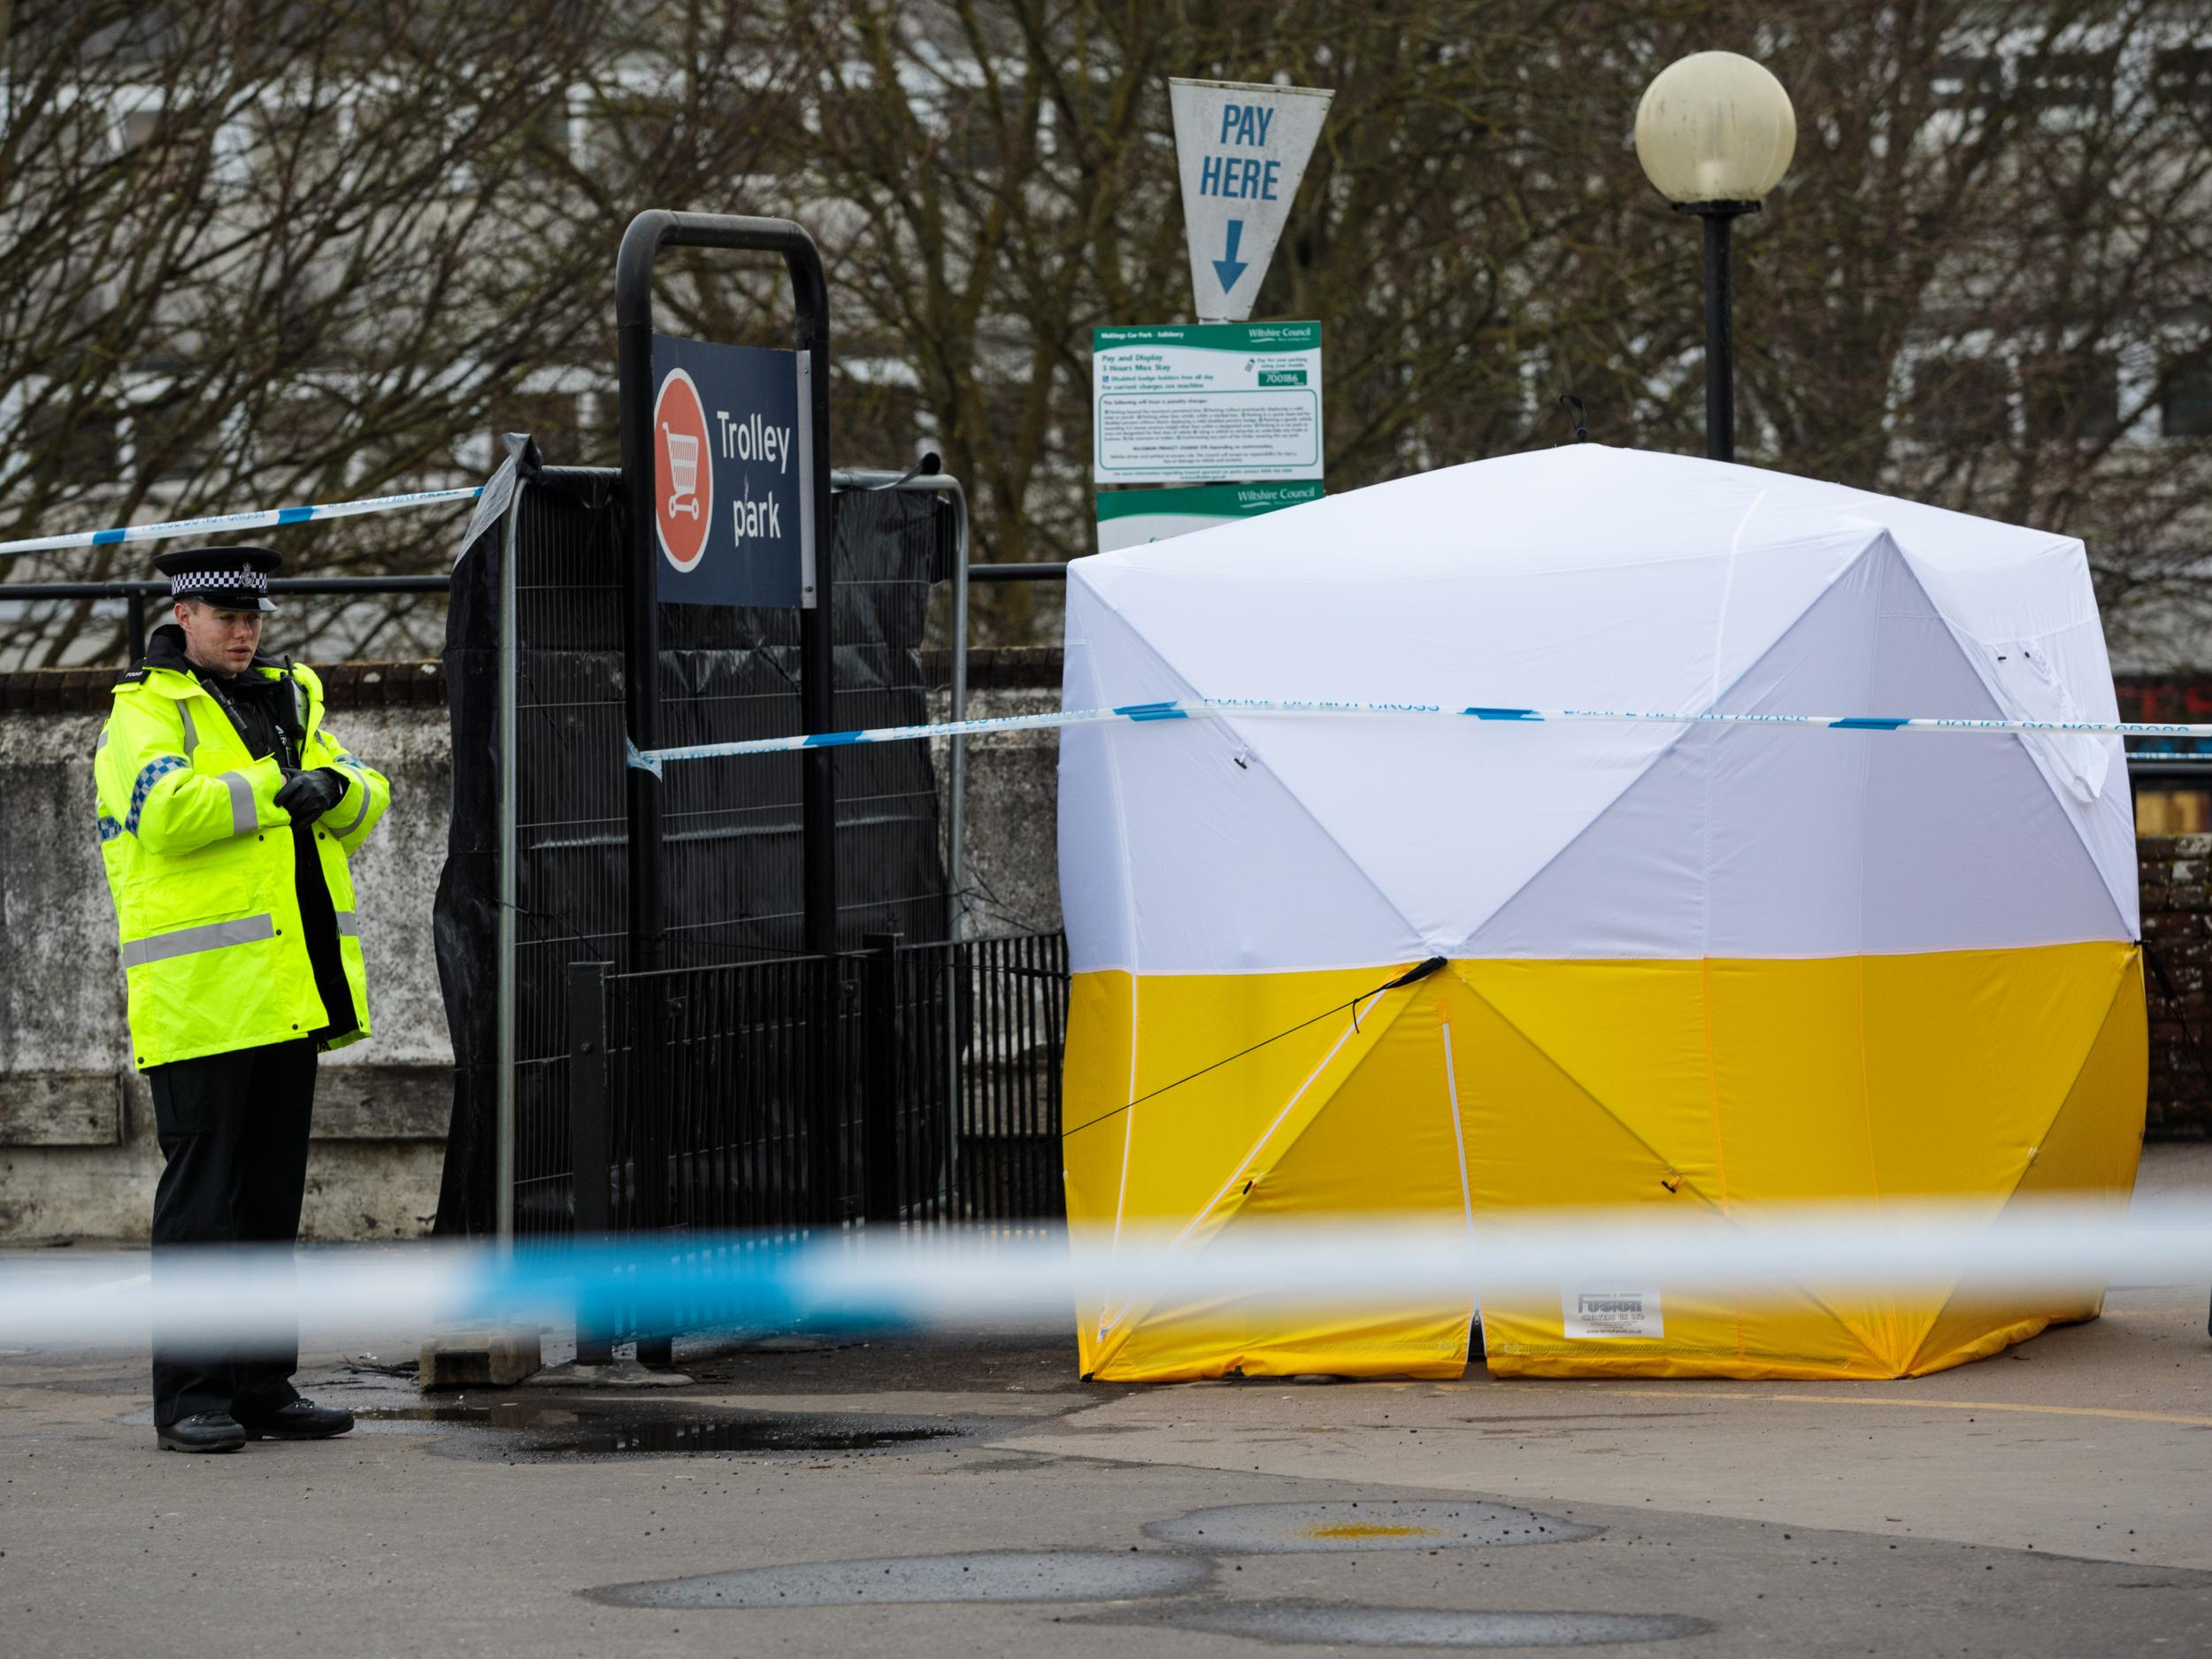 \'Hundreds could be at risk for years\', warns scientist who developed Salisbury nerve agent